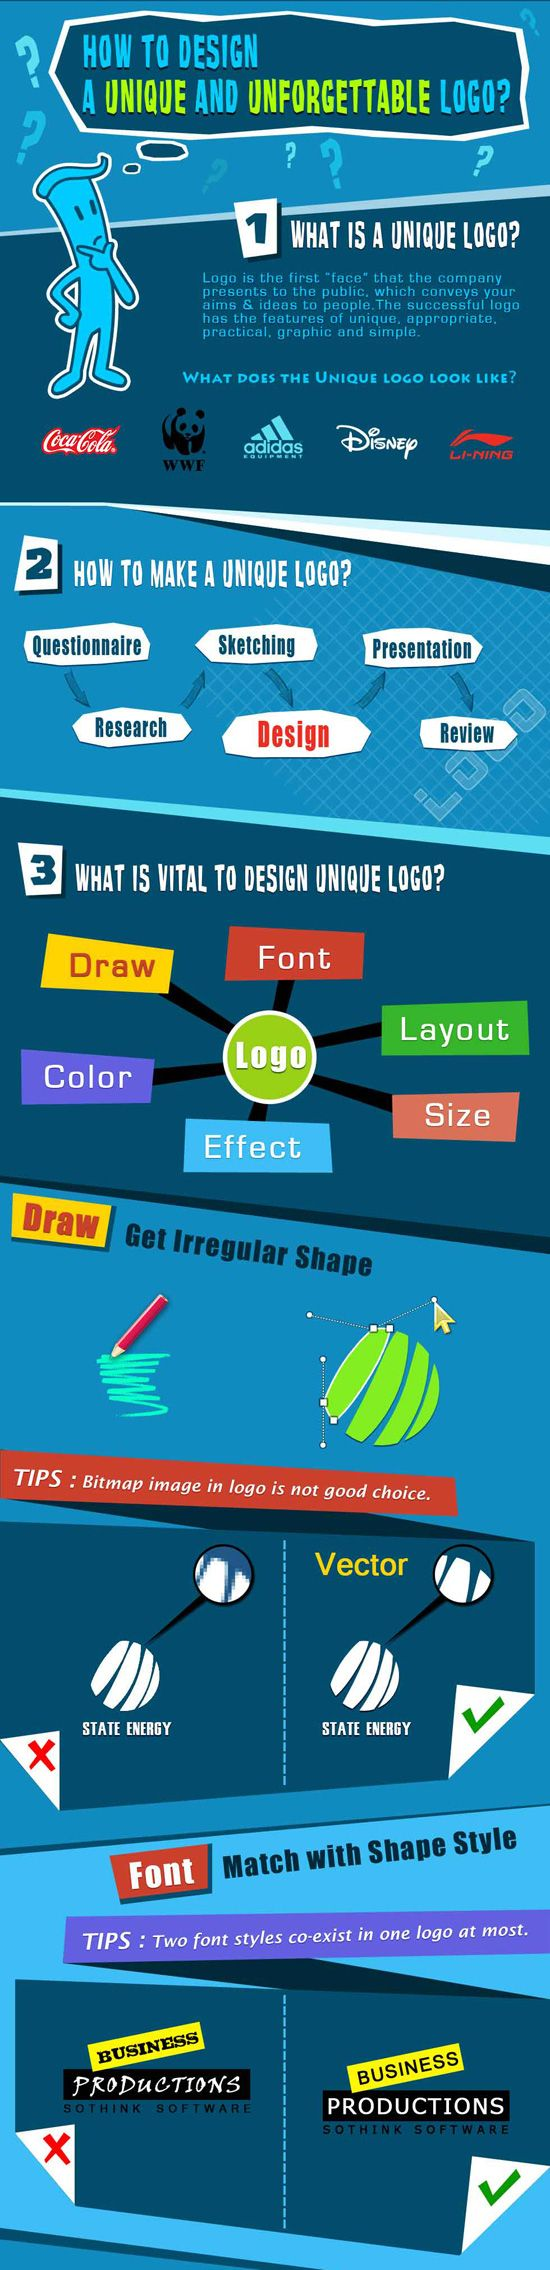 How To Design A Unique And Unforgettable Logo